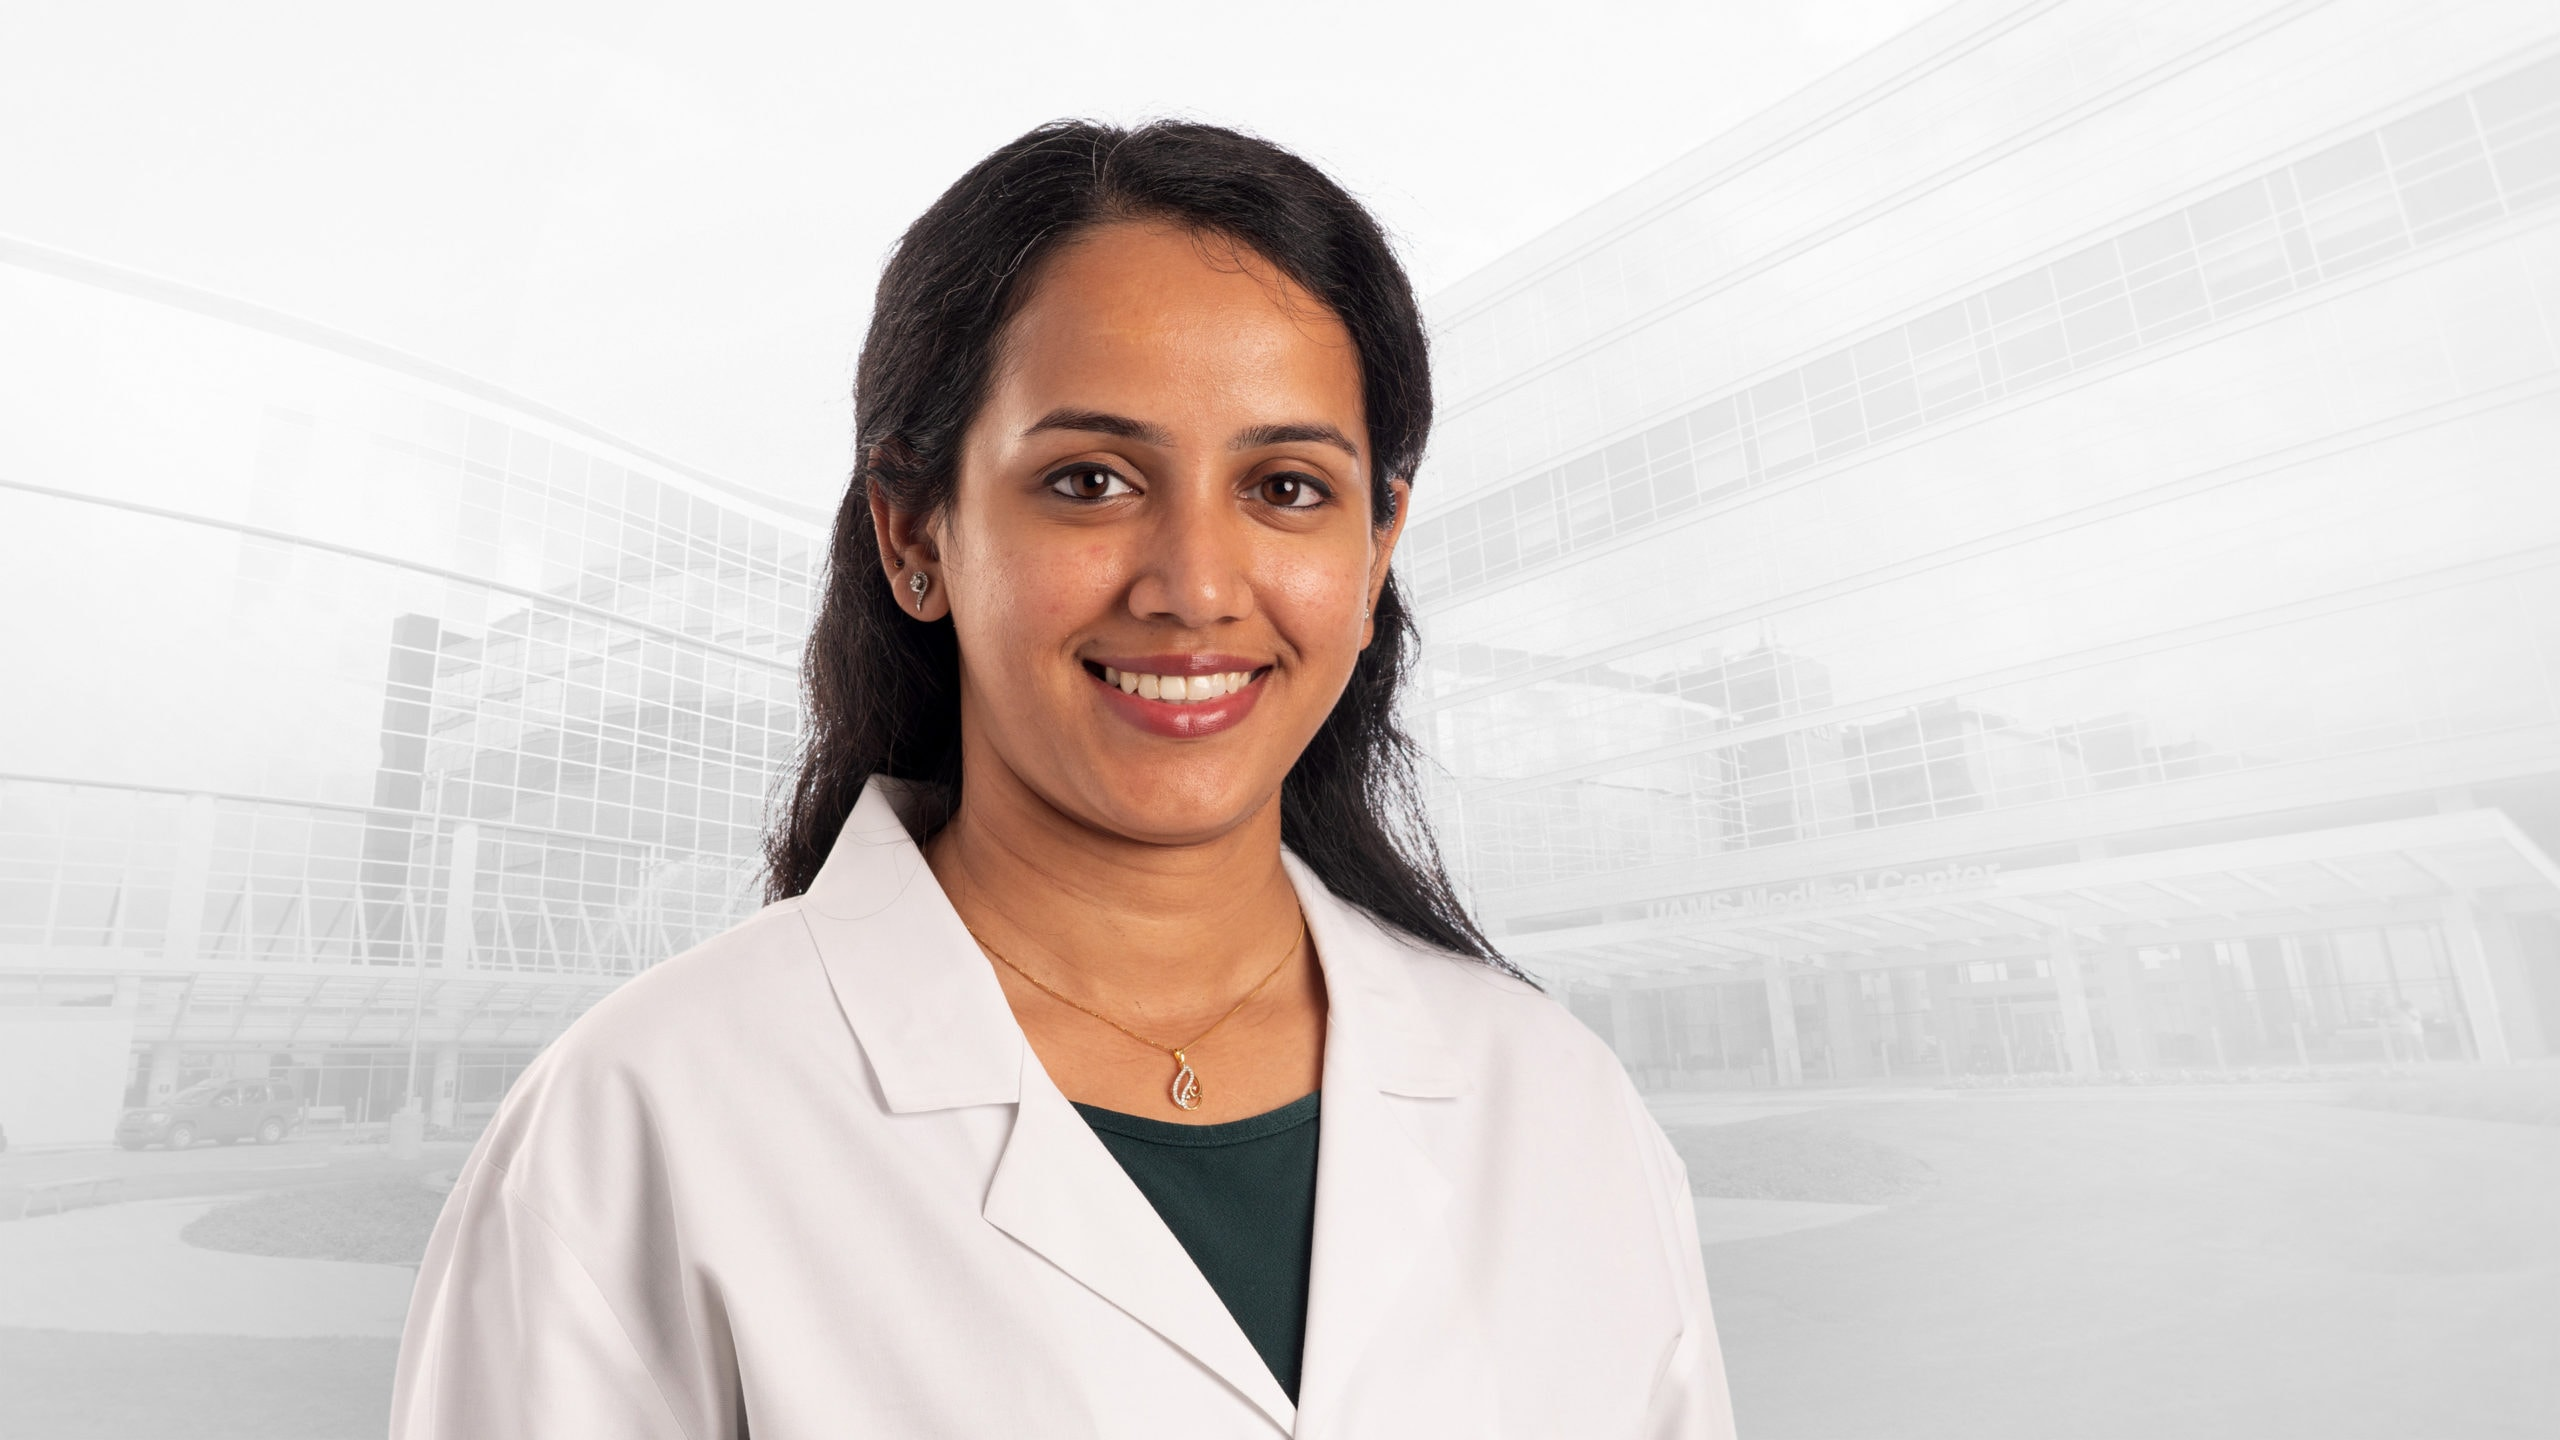 Sindhu Malapati, M.D., Medical Oncologist specializing in breast cancer